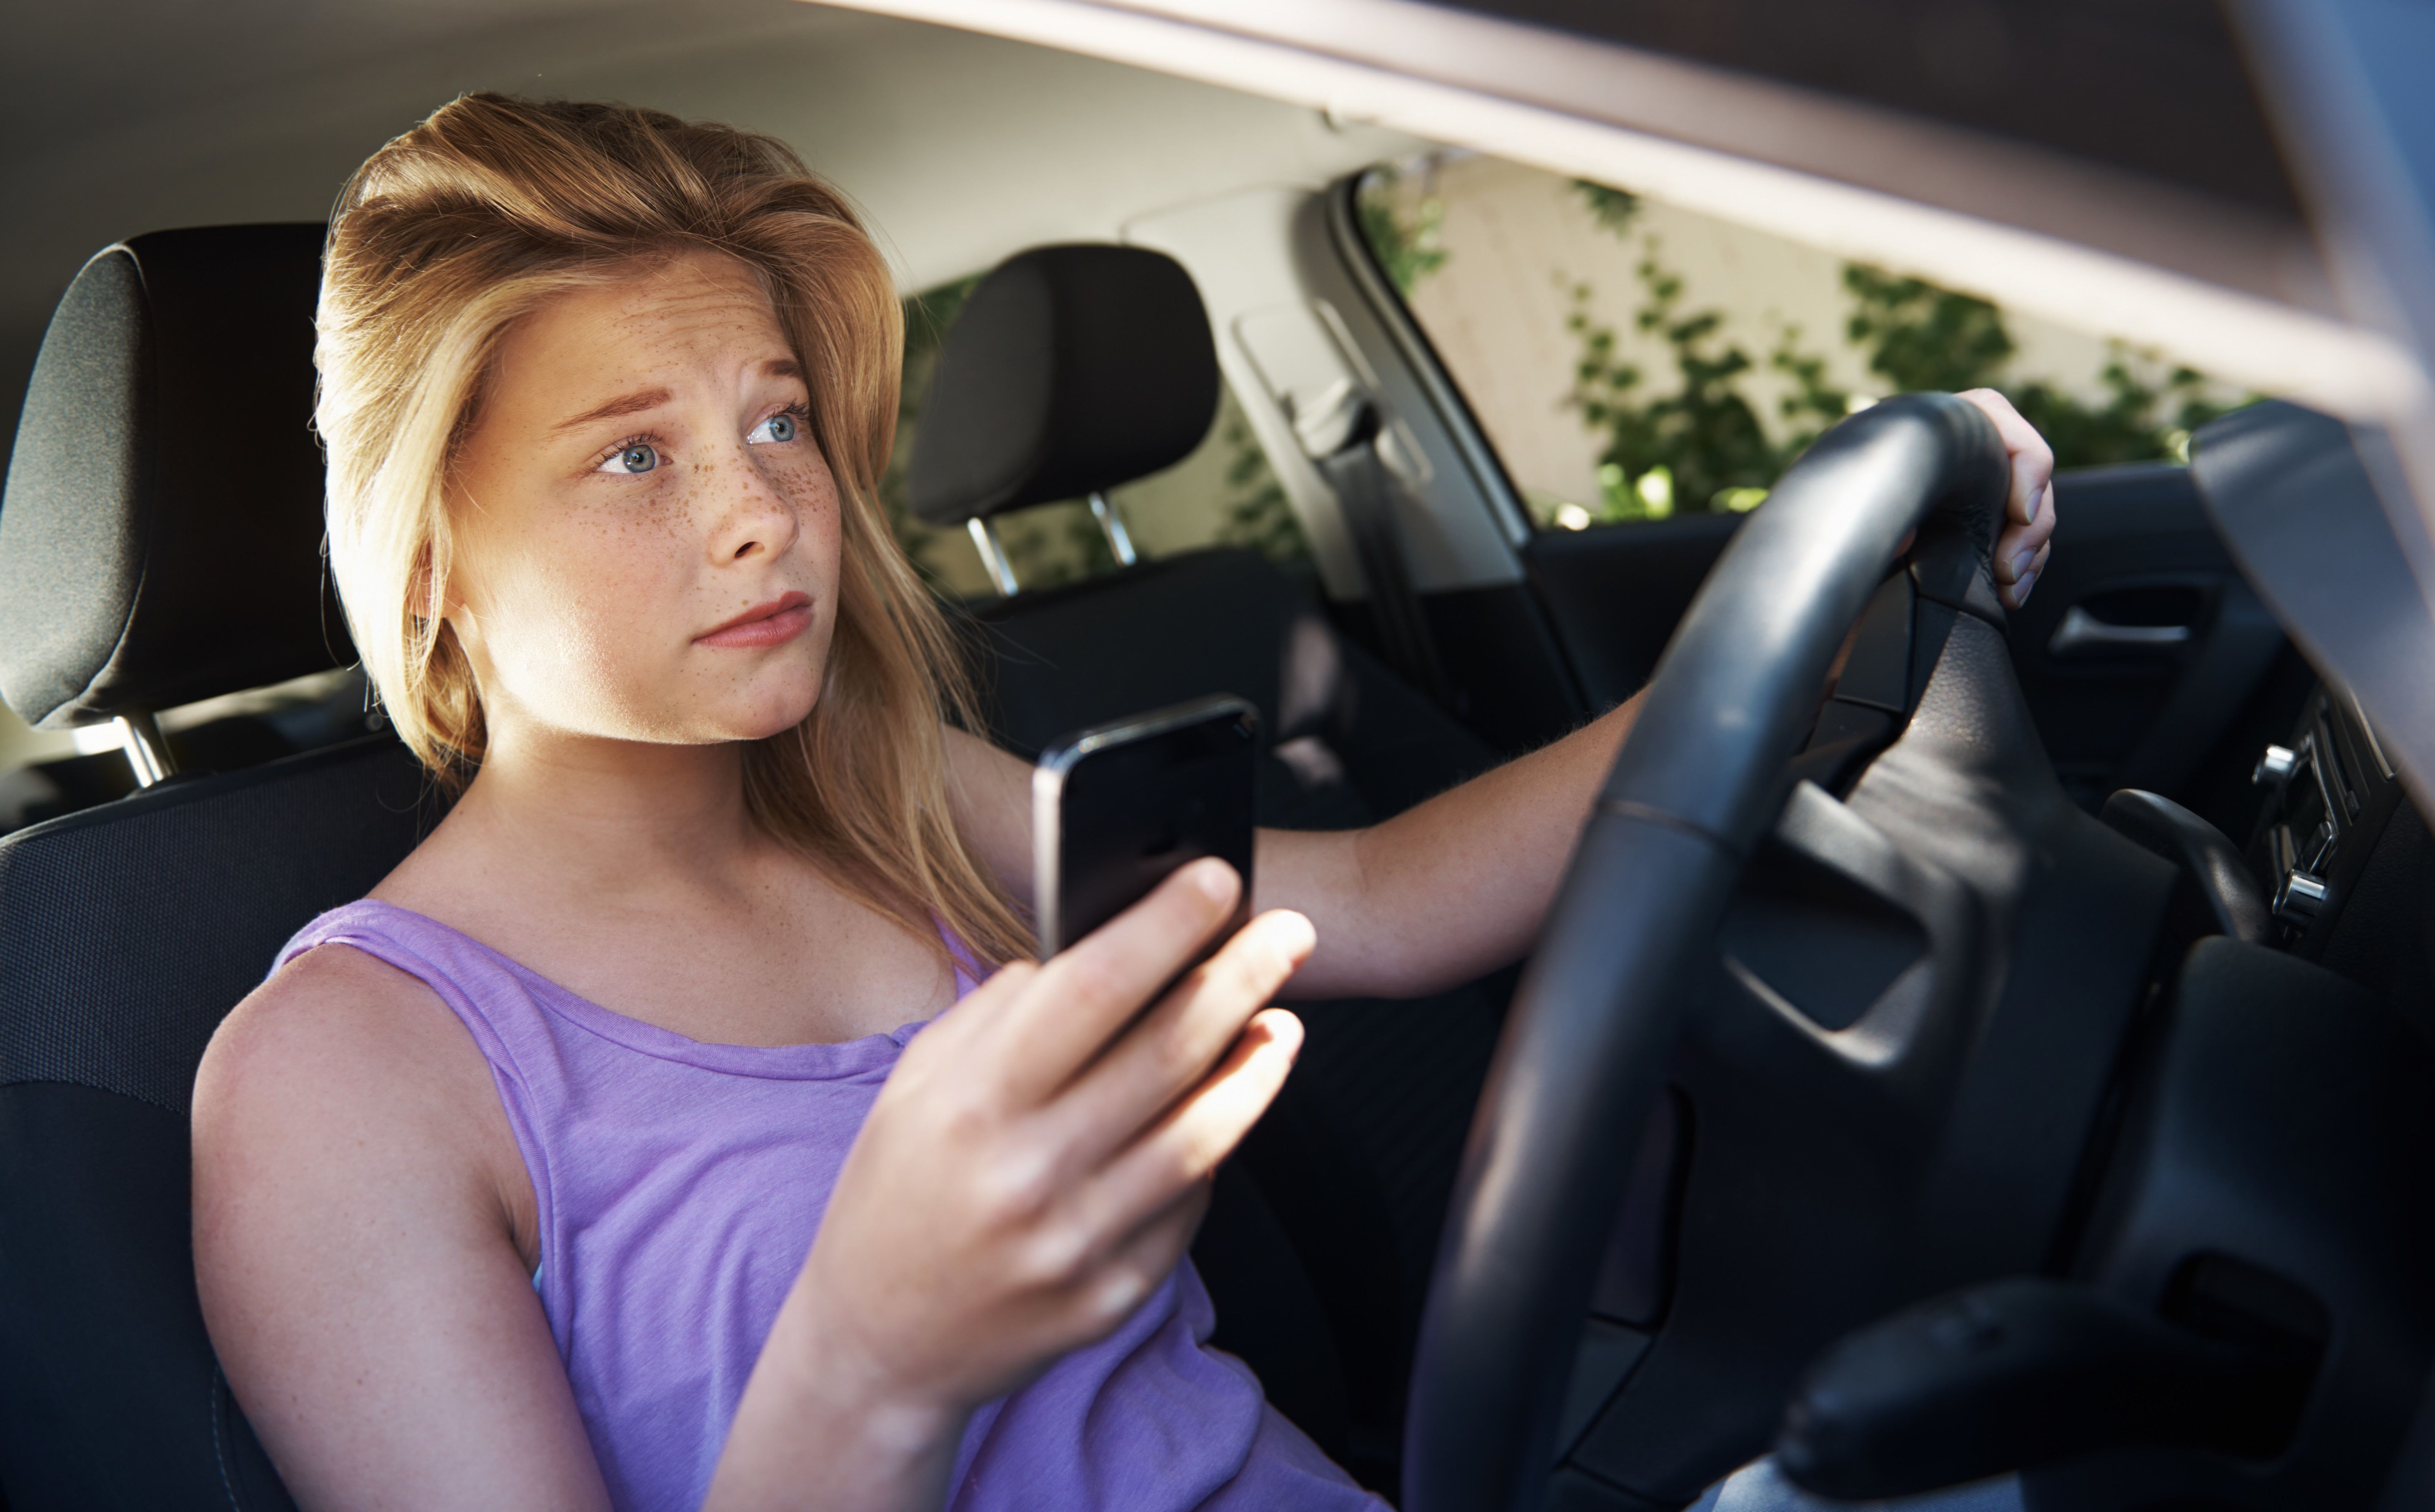 Helicopter parents know their teens are driving, but text them anyway.